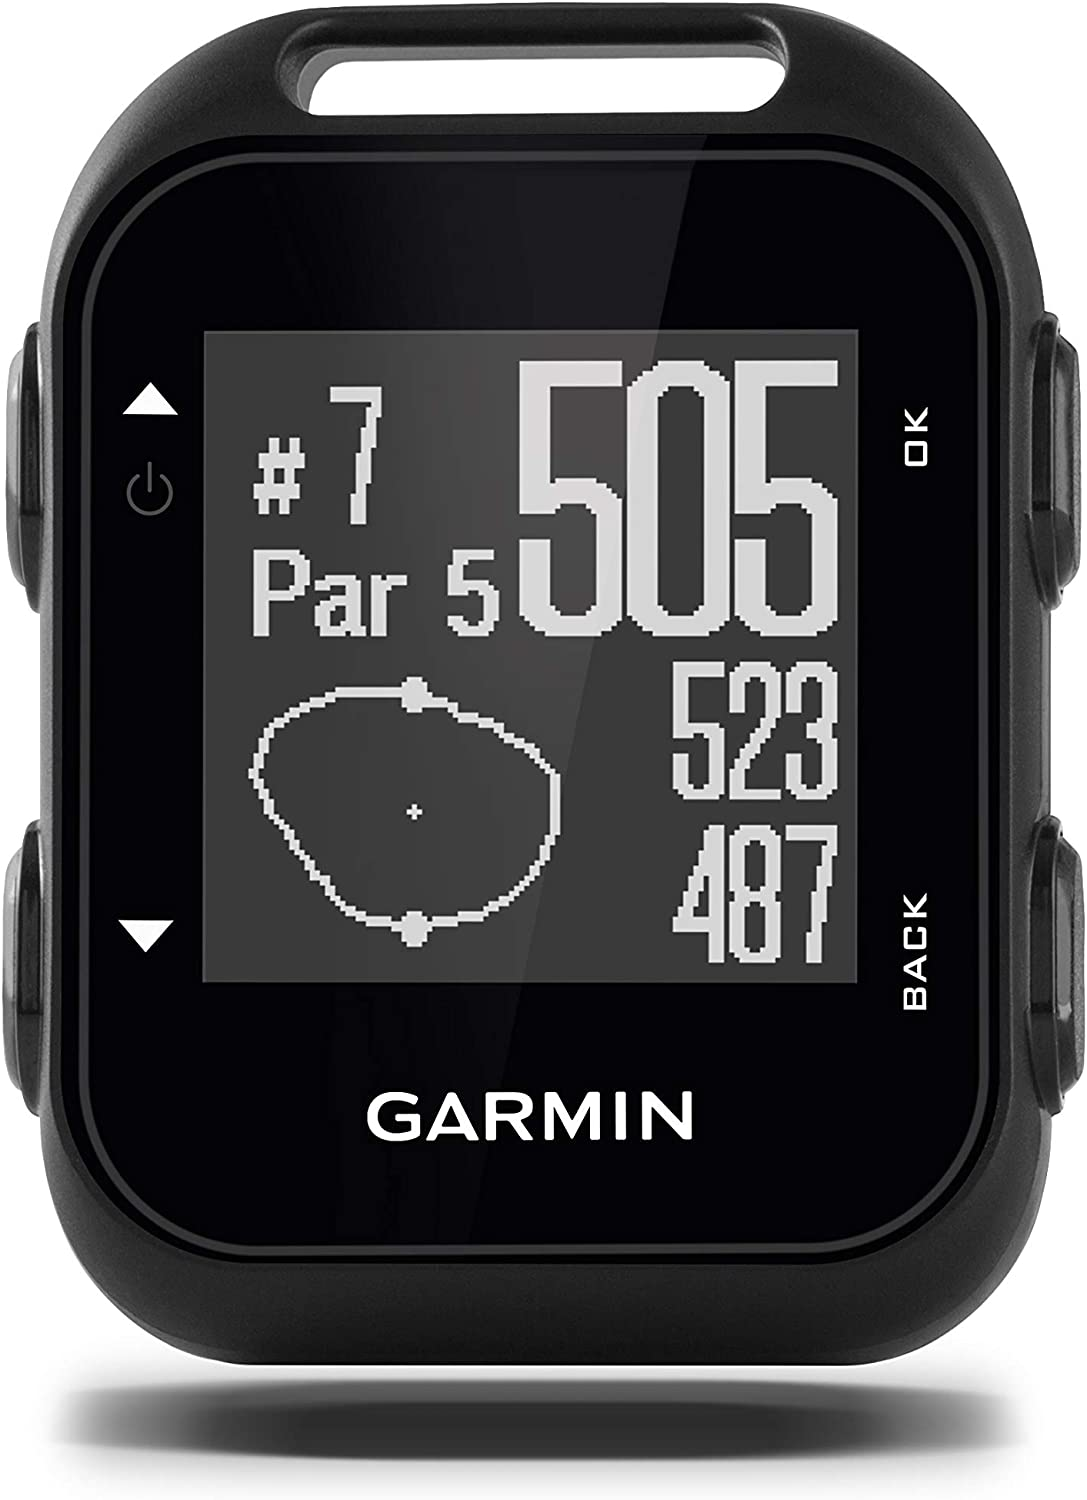 Garmin Approach G10 Compact and Handheld Golf GPS with 1.3″ Display